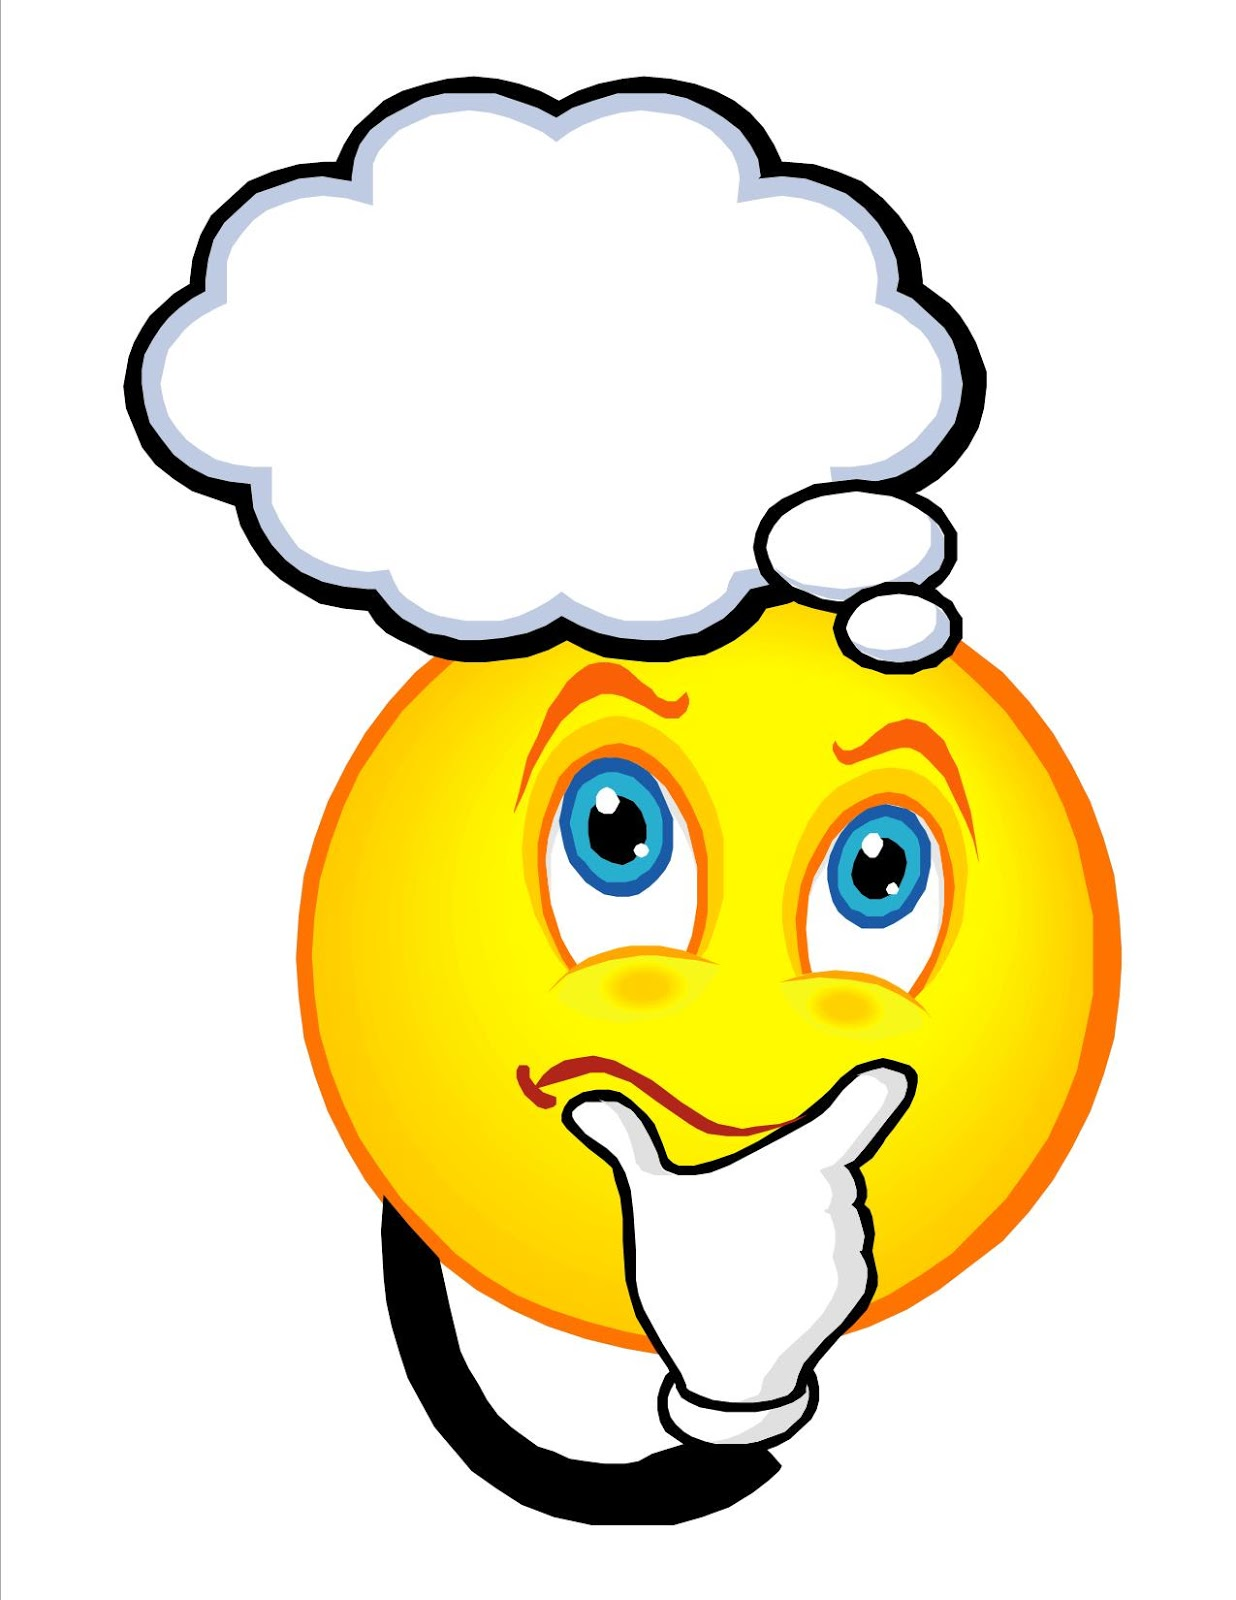 Olaf clipart thinking. Free think cliparts download